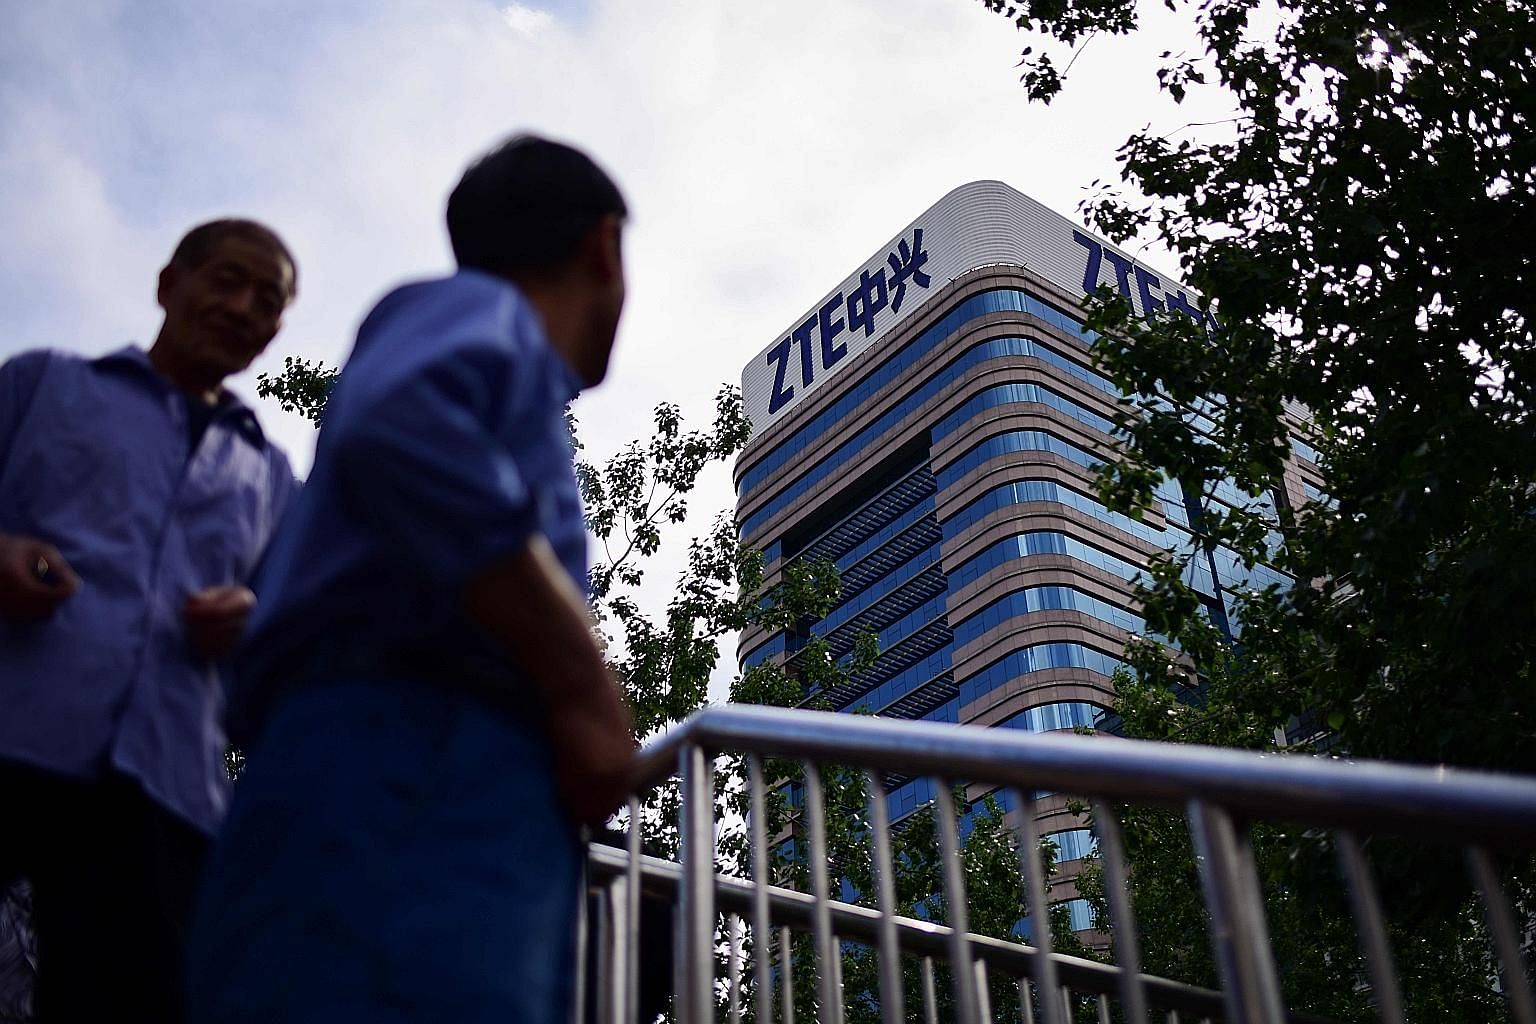 To lift the ban on buying from US suppliers, ZTE will have to pay a fine, change its board and management, and provide security guarantees. The company has estimated losses of at least US$3.1 billion from the ban.